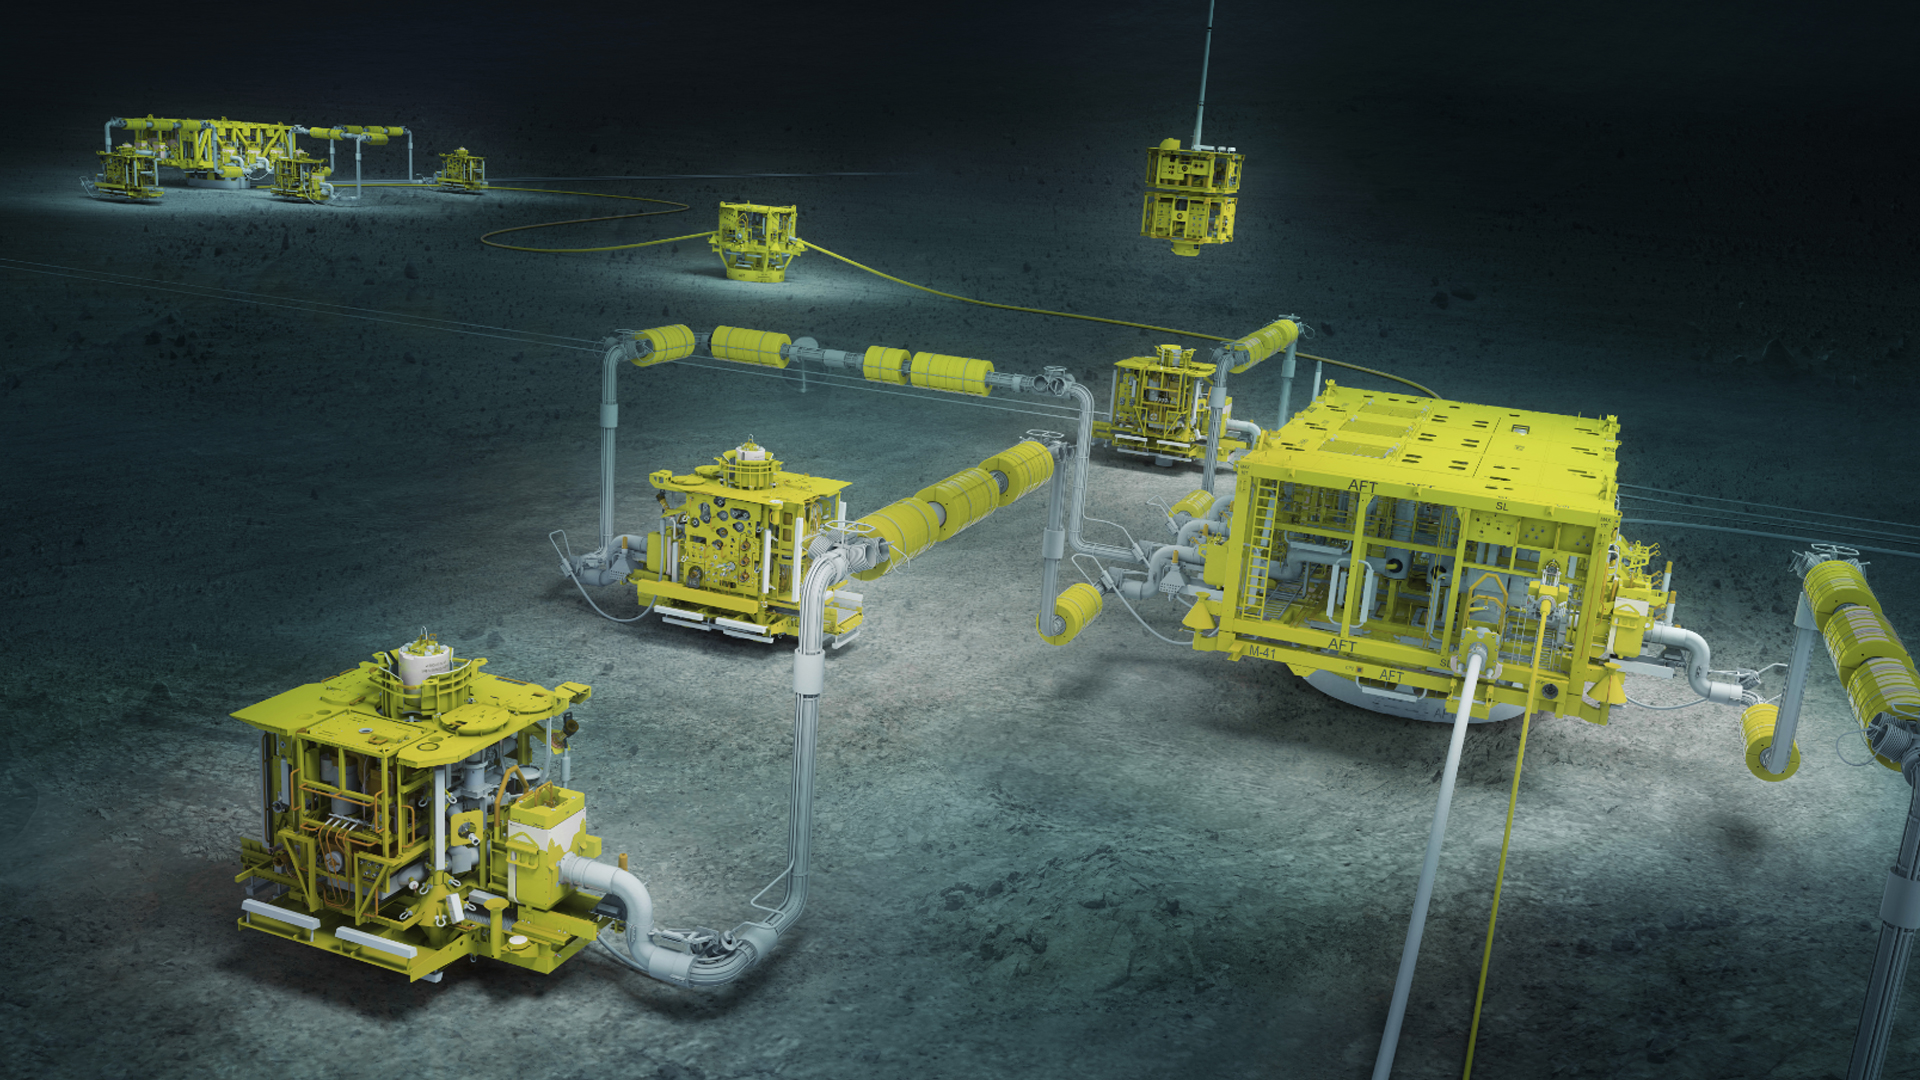 Aker solutions subsea